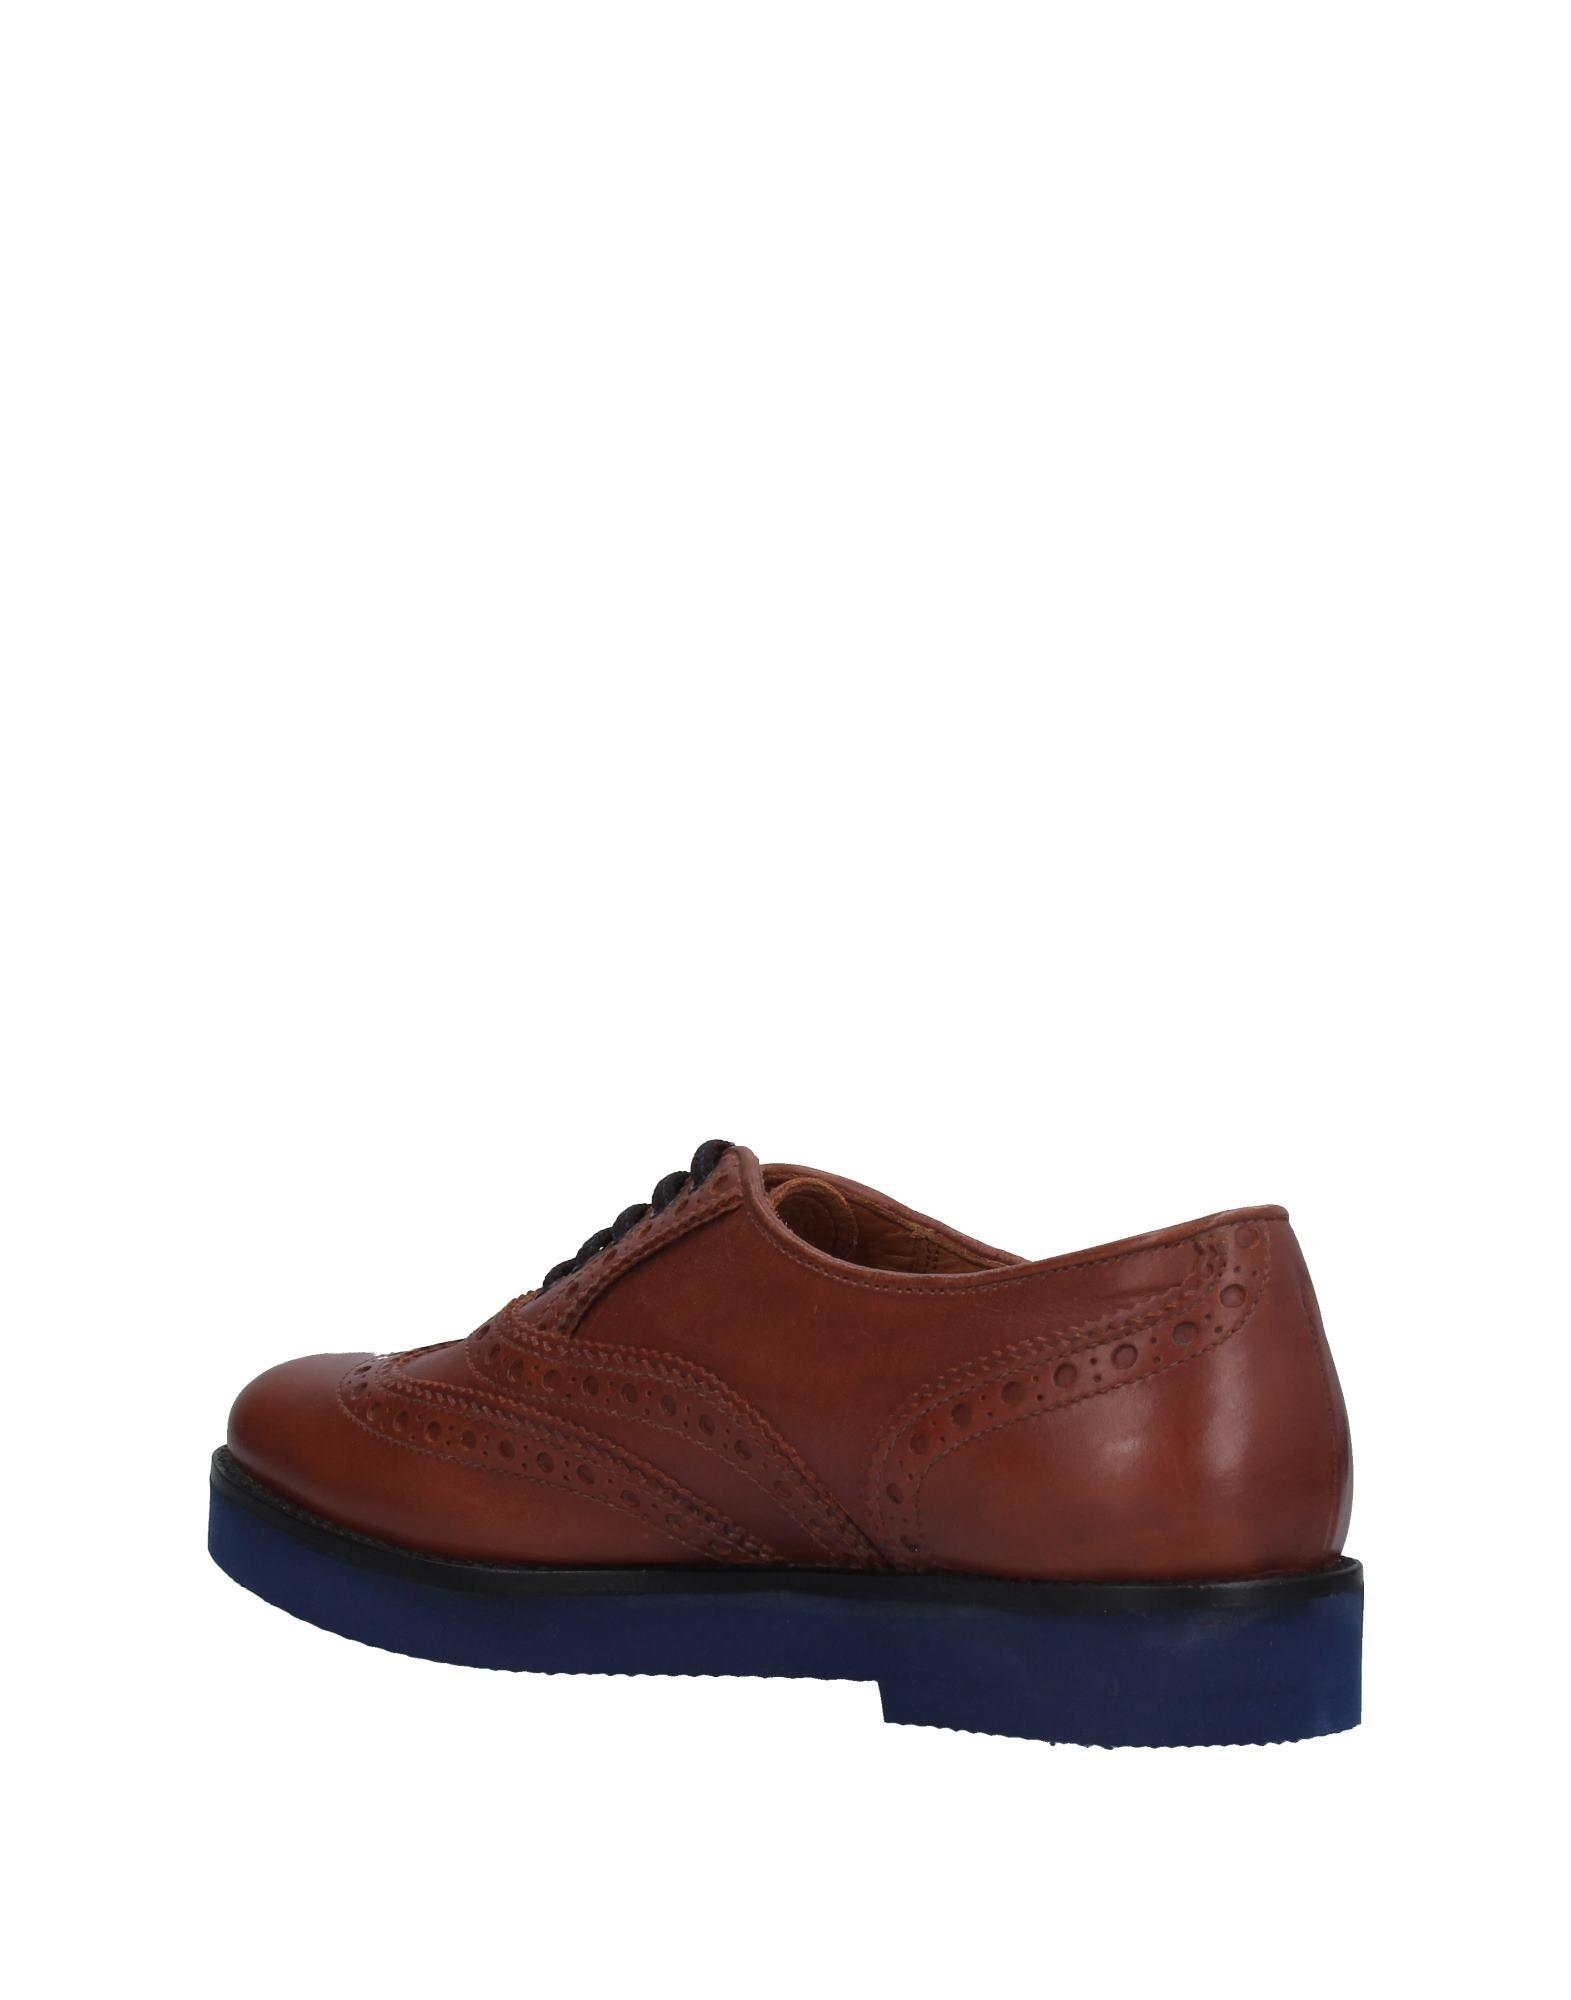 Fratelli Shoes Brown And White